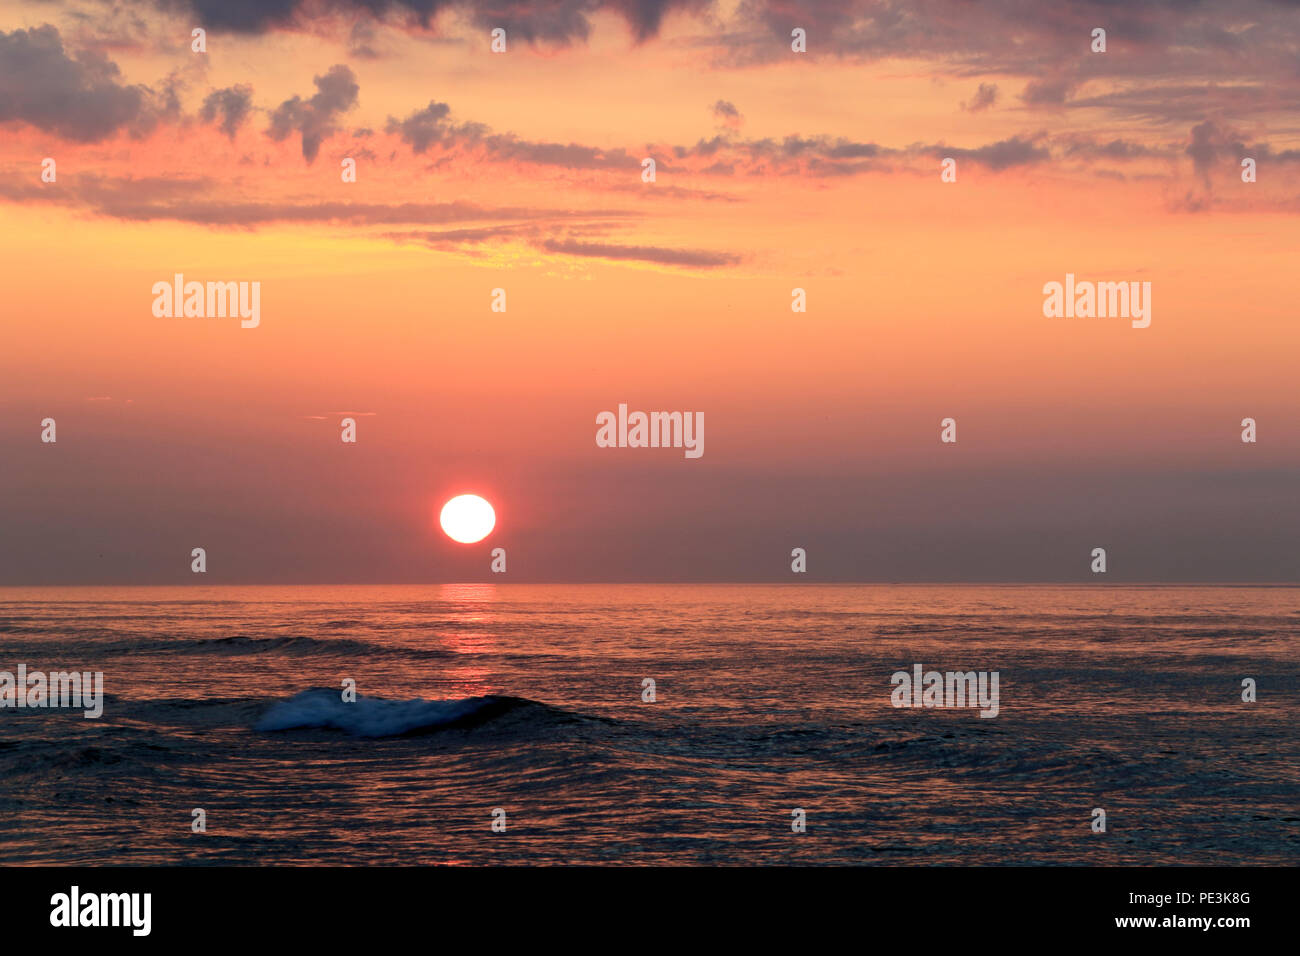 Sonnenaufgang in Wildwood, NewJersey, USA Stockbild